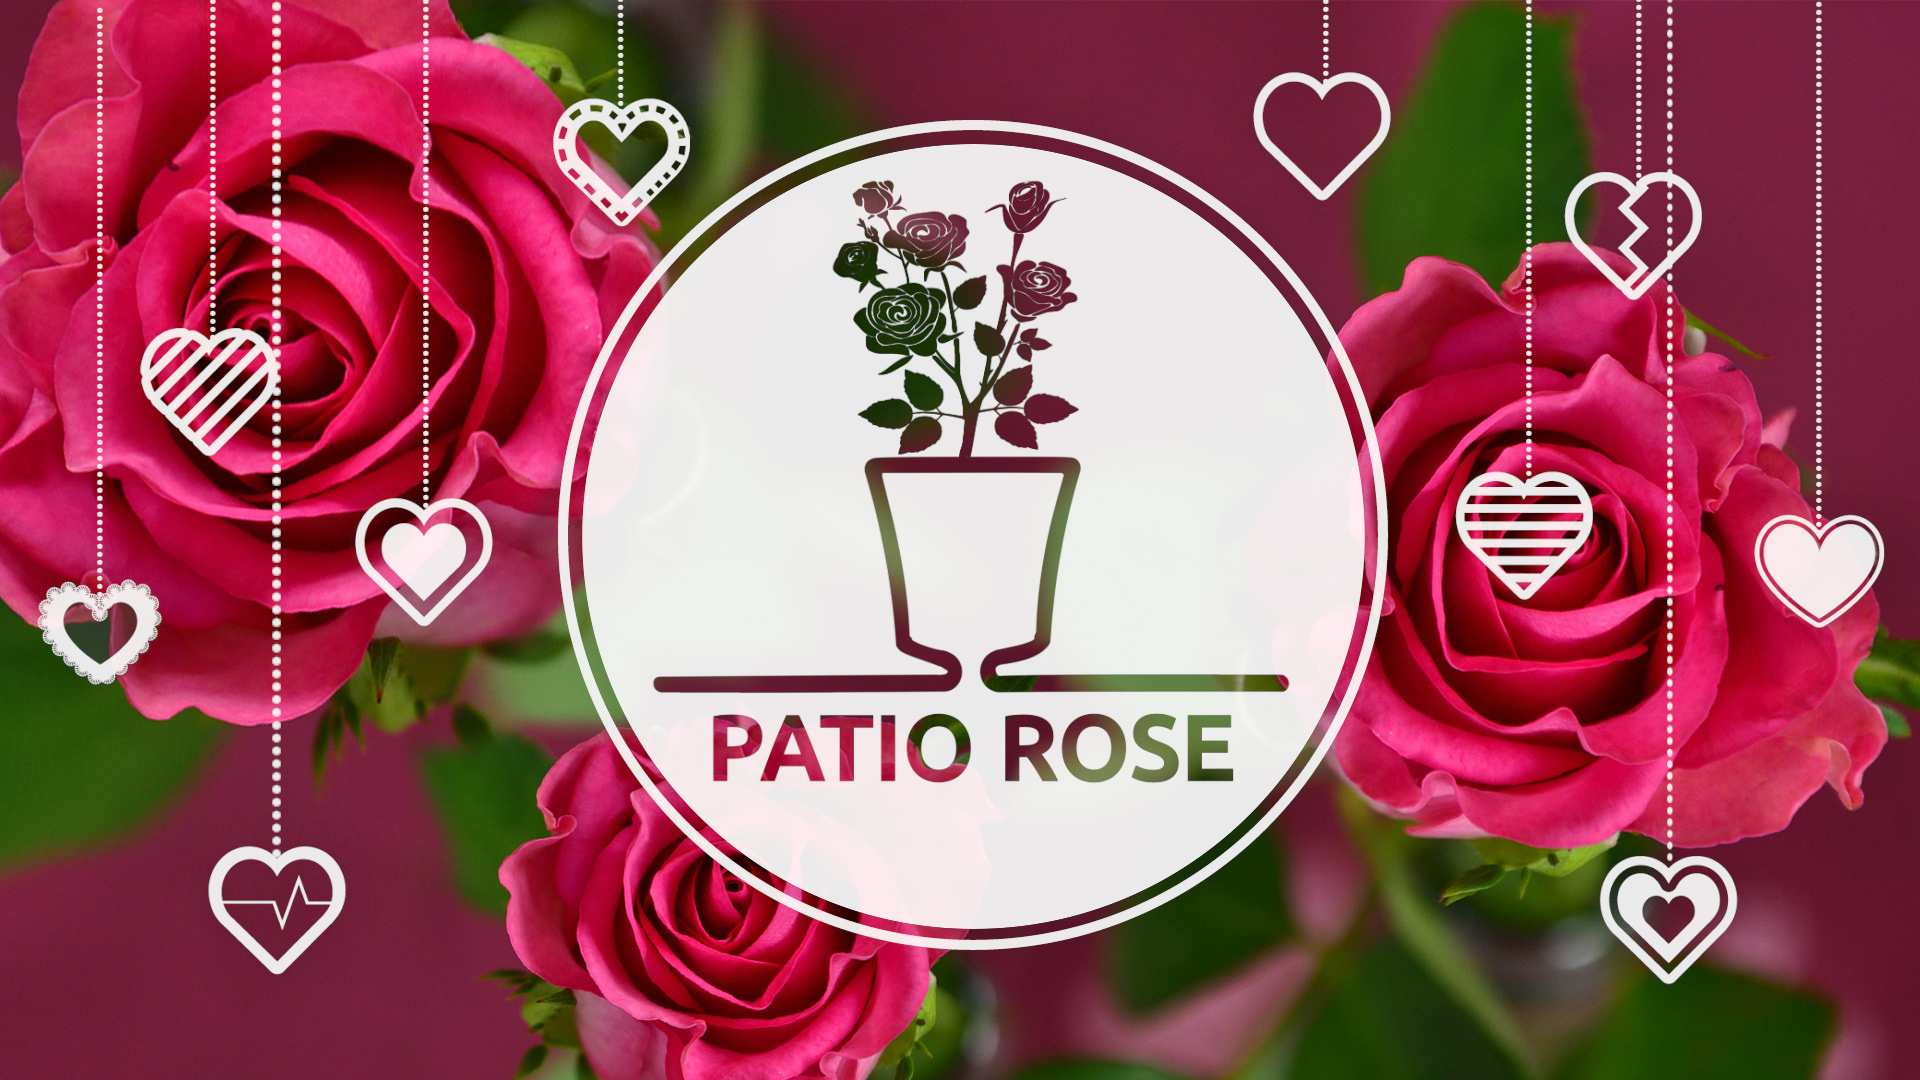 Arte Express Yourself How To Plant Patio Rose In Arte Purple 8march Special Edition